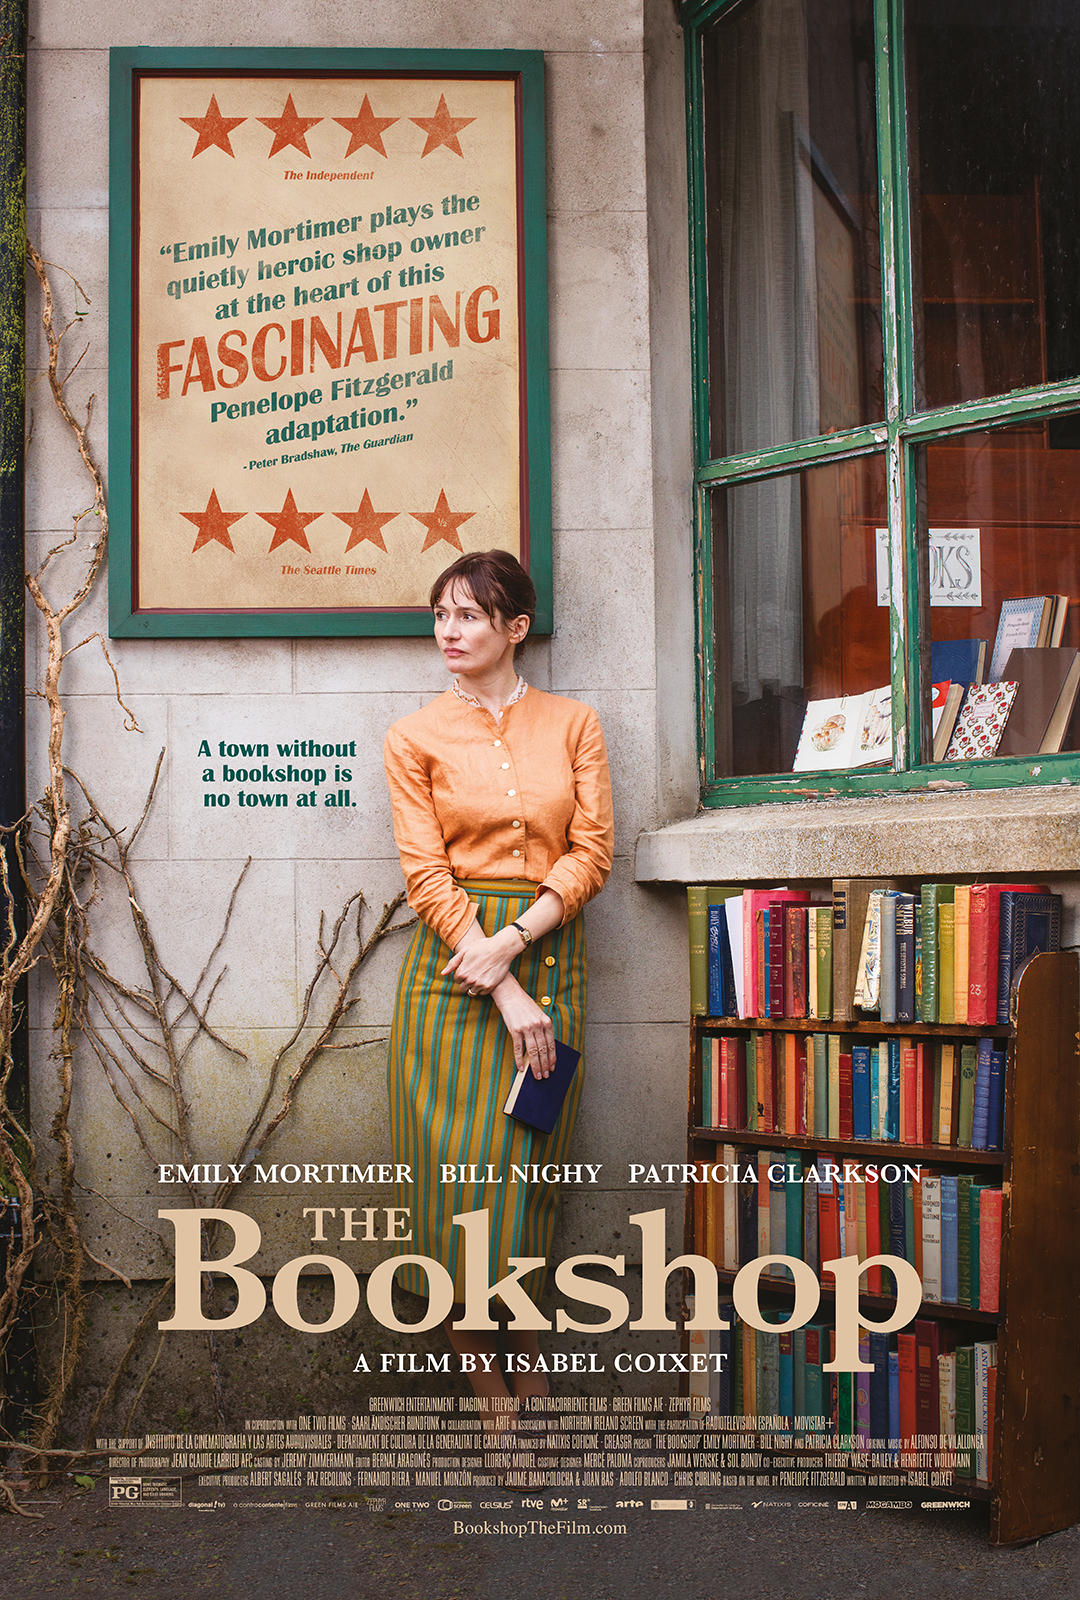 Film poster showing Emily Mortimer leaning against the wall of a book store.